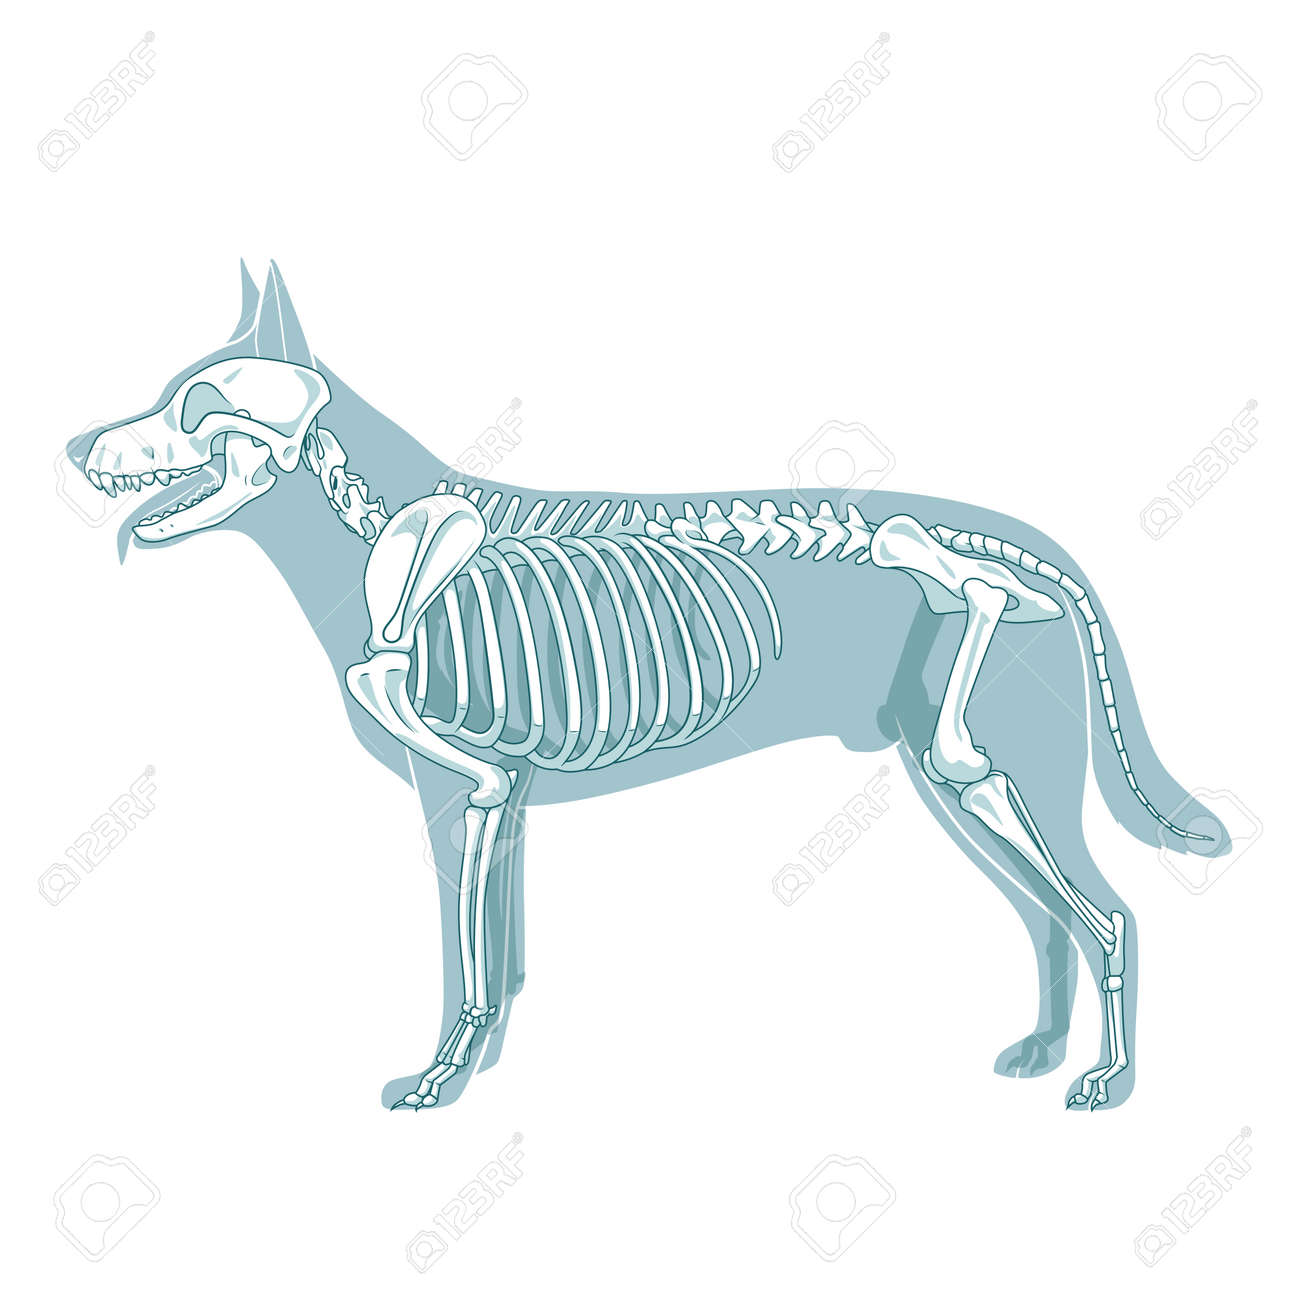 Dog Anatomy Stock Photos. Royalty Free Dog Anatomy Images